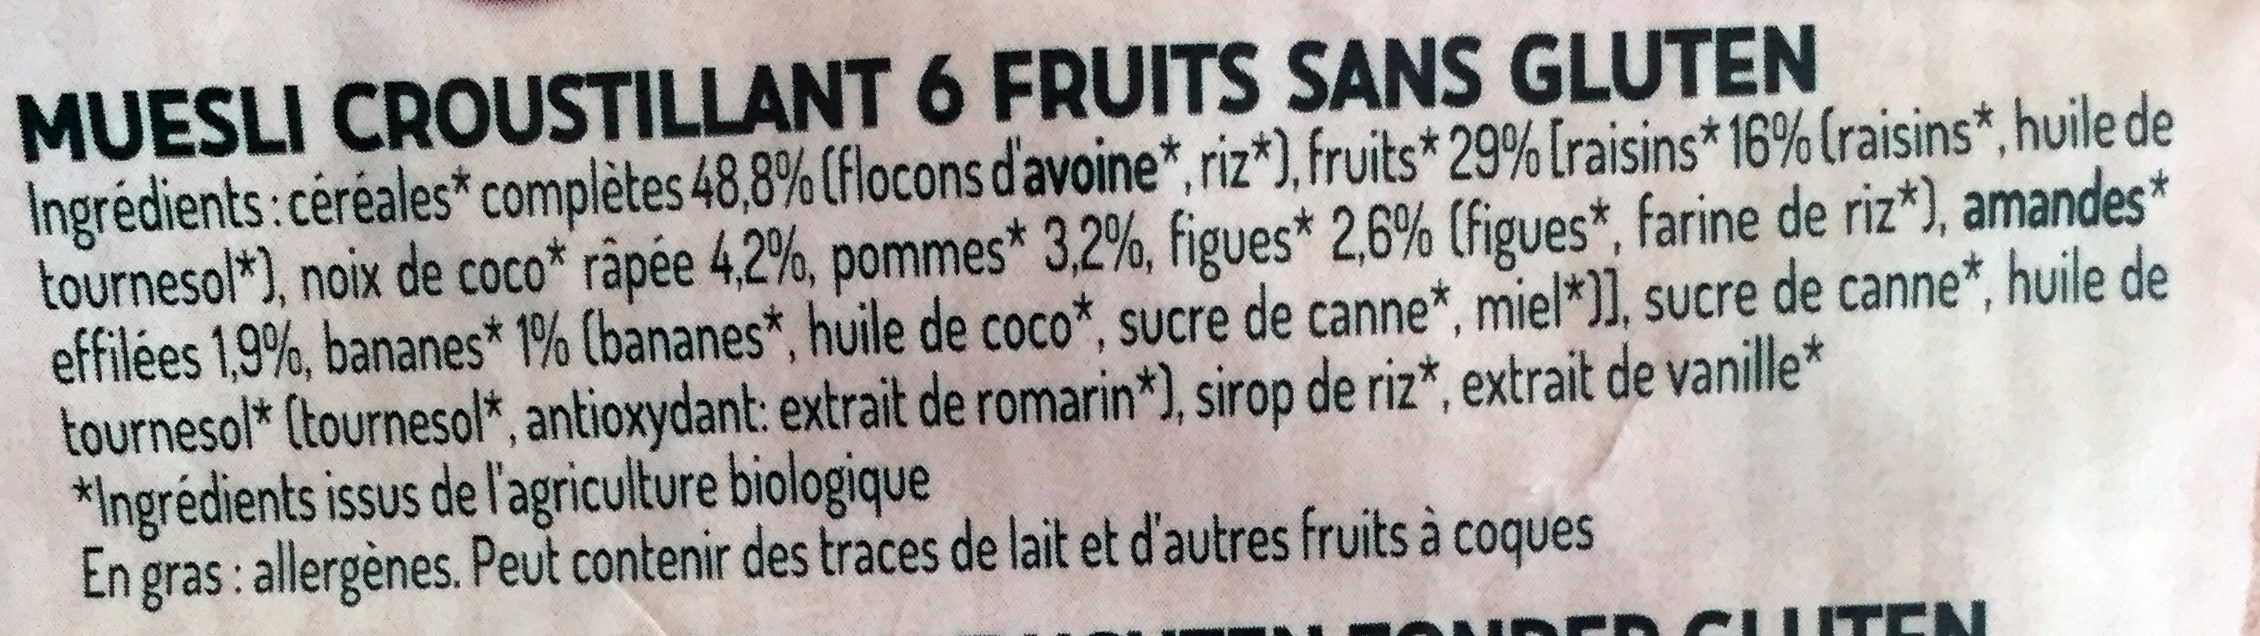 Muesli Croustillant 6 Fruits - Ingredients